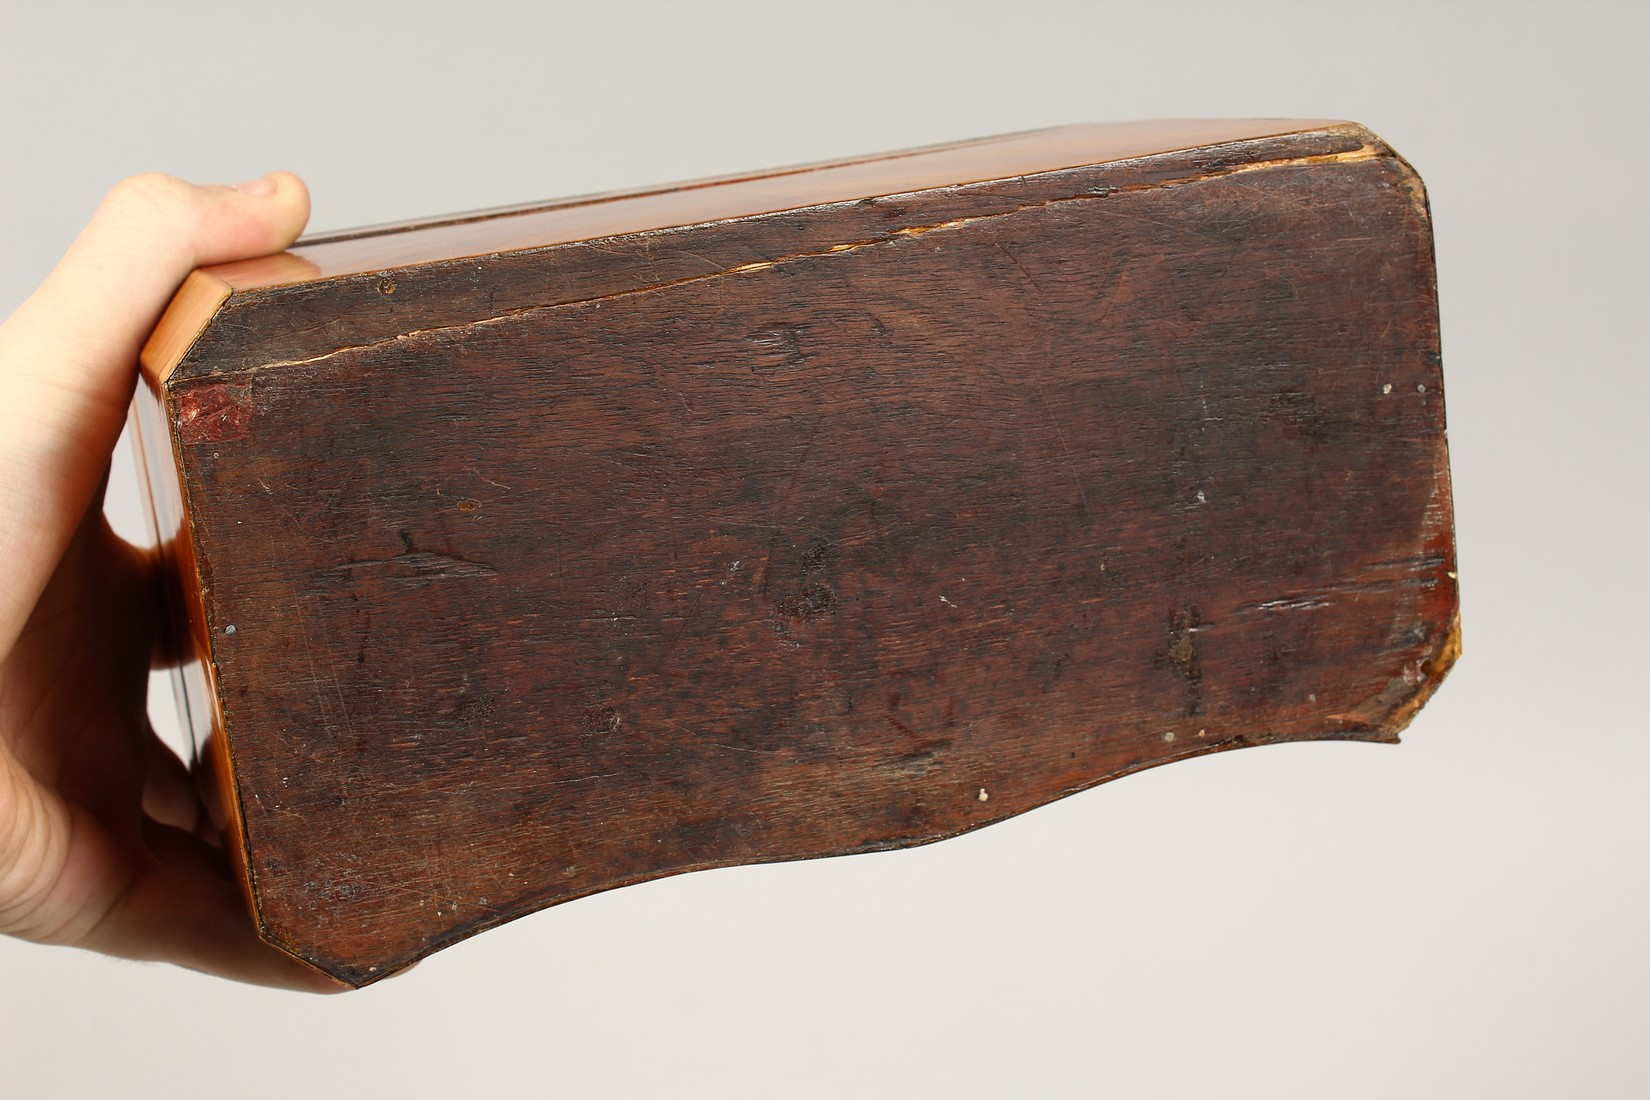 A 19TH CENTURY FRENCH KINGWOOD SERPENTINE-FRONTED TWO DIVISION TEA CADDY with Van Dyck pattern - Image 6 of 6